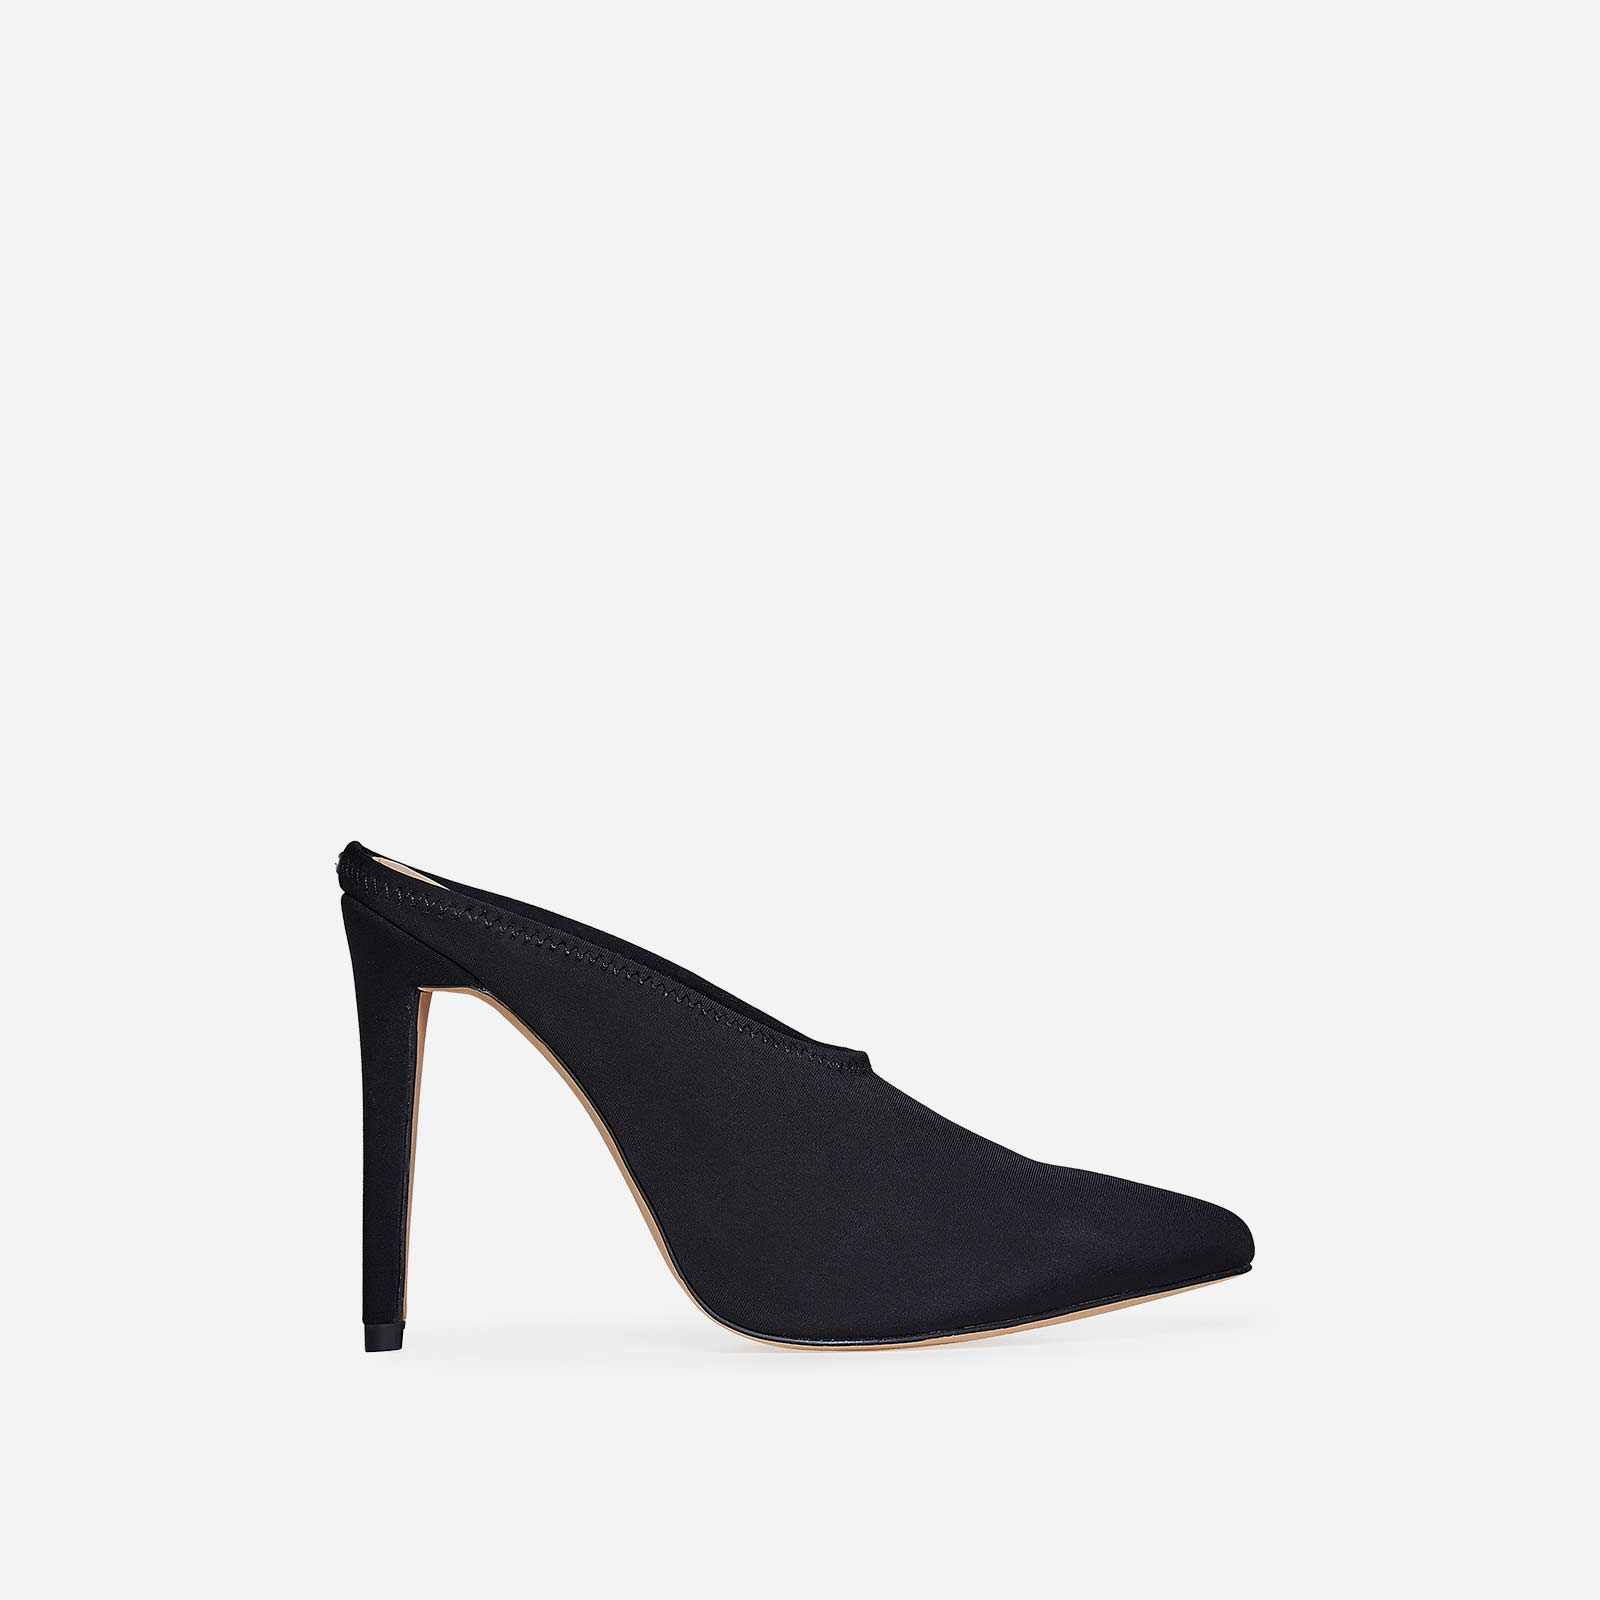 Darla Closed Toe Mule Heel In Black Lycra